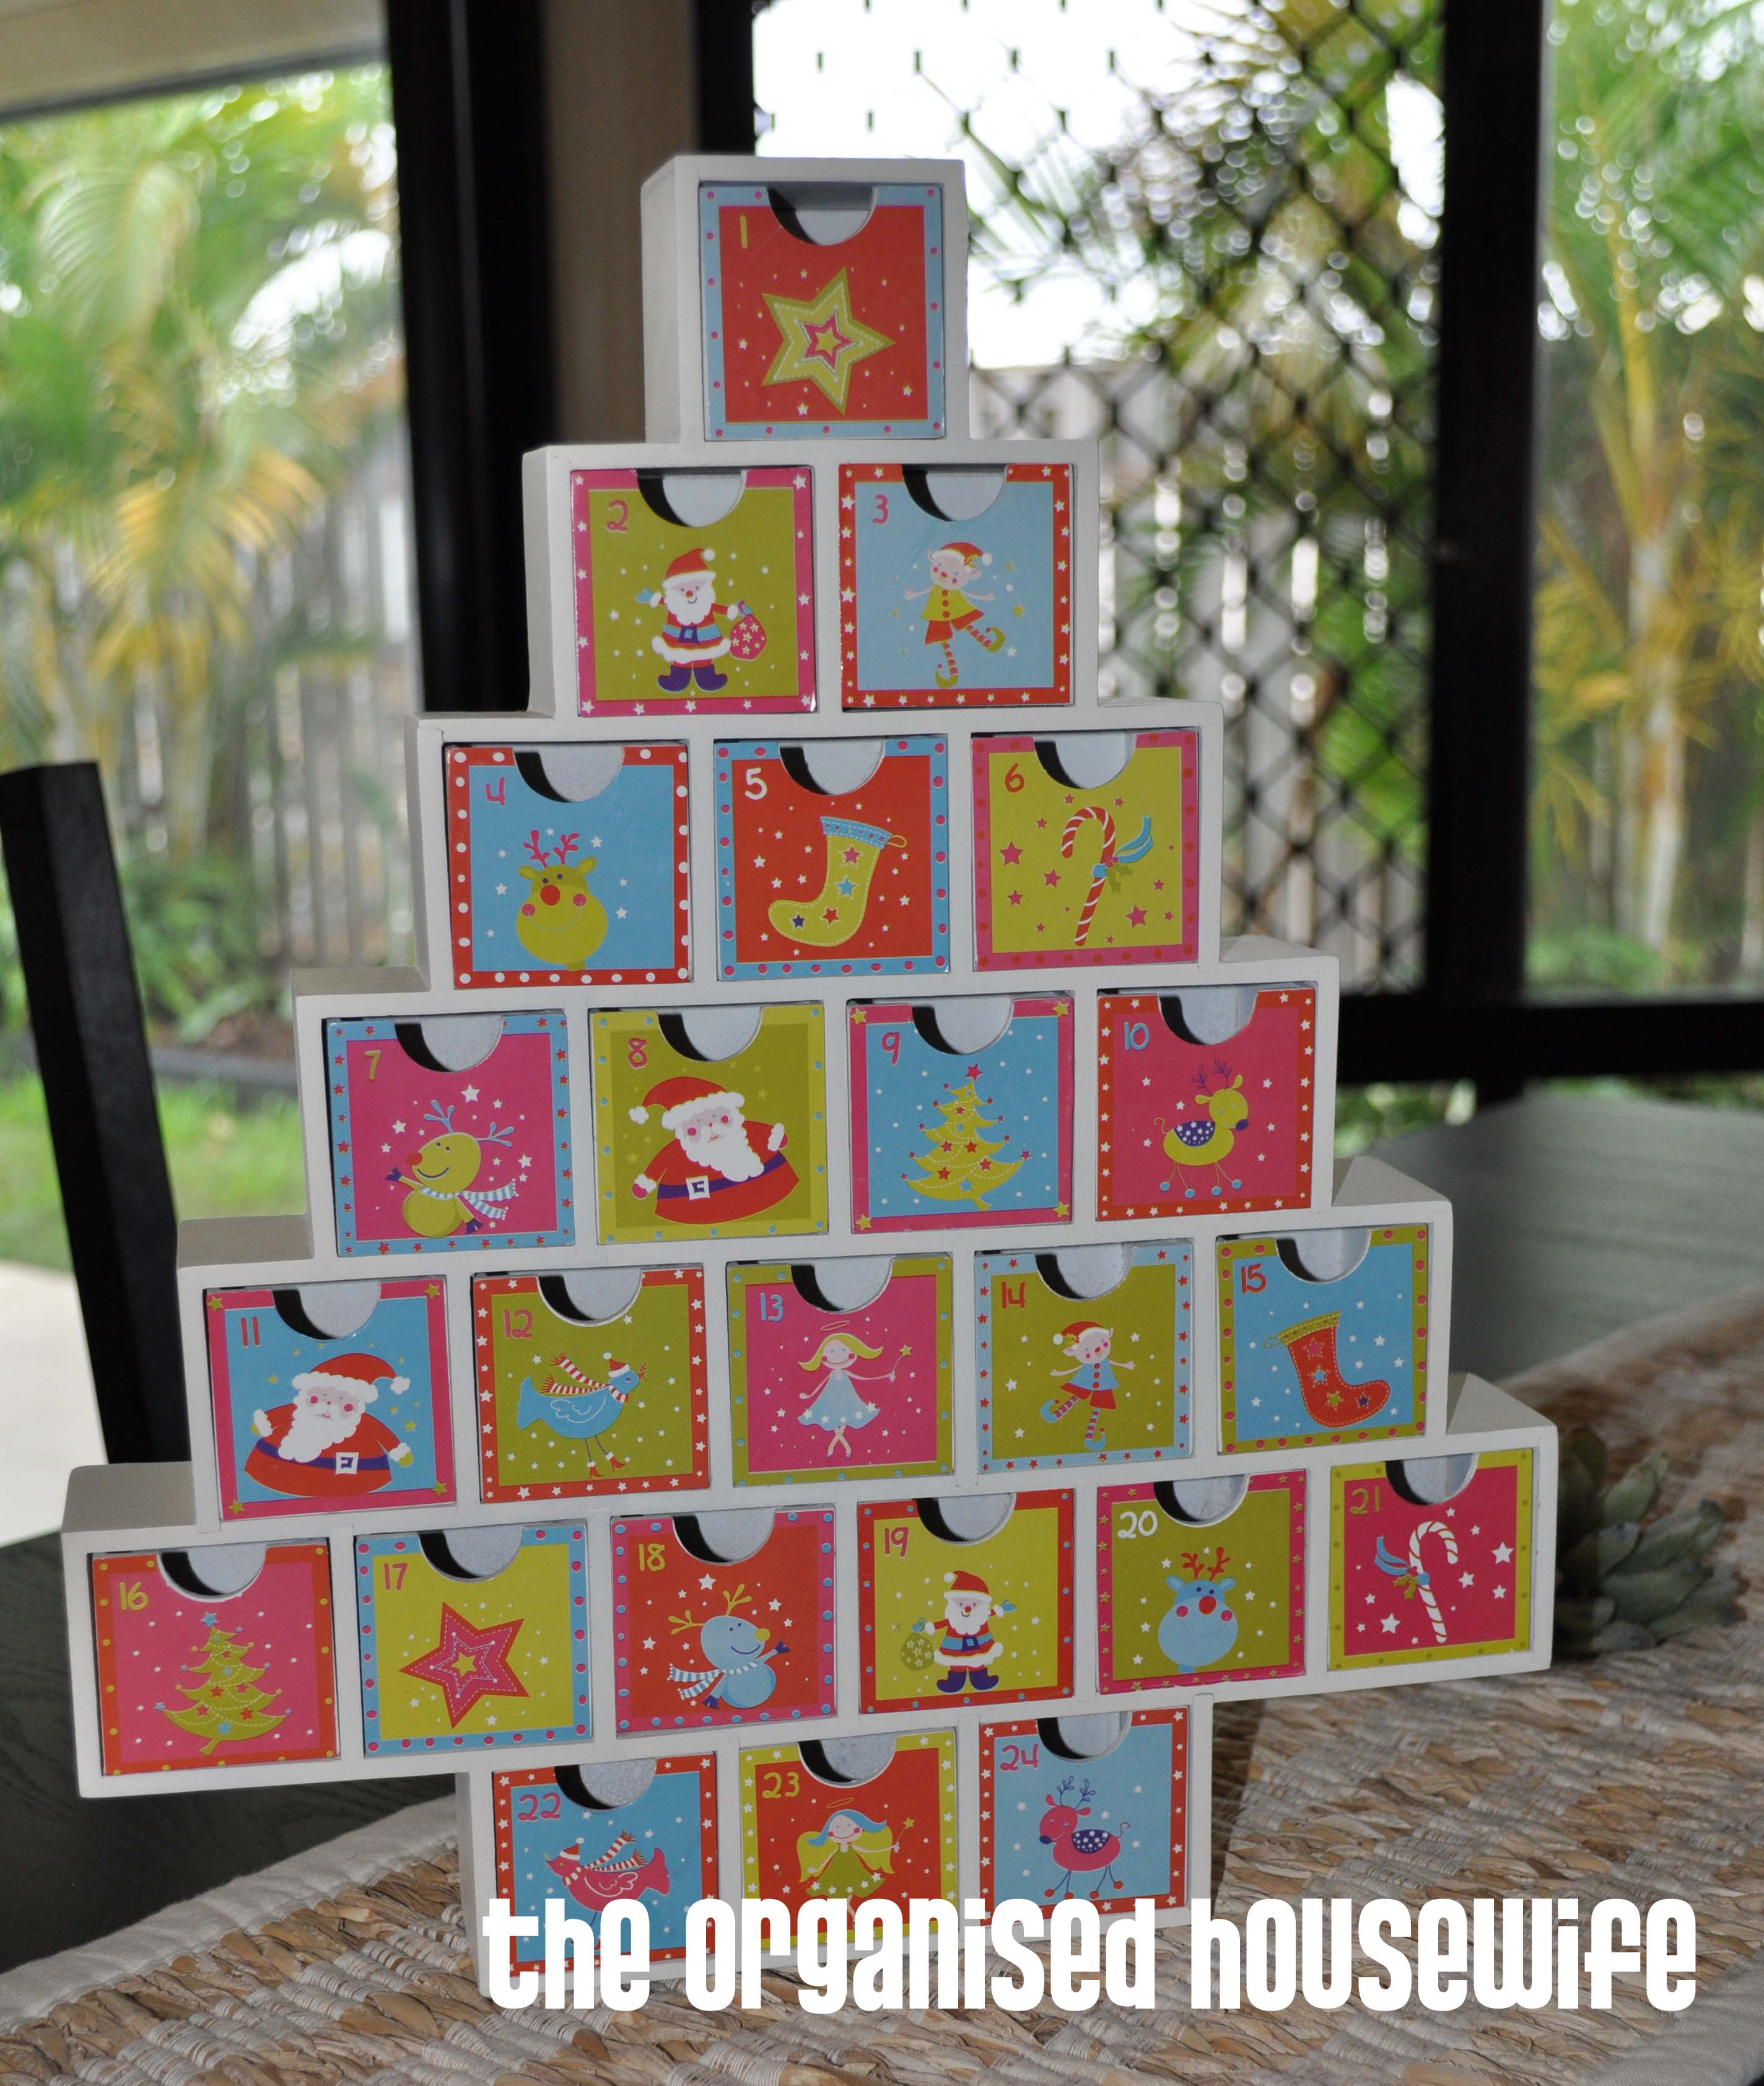 Advent Calendar Gift Ideas : Christmas planning gifts to put in an advent calendar or